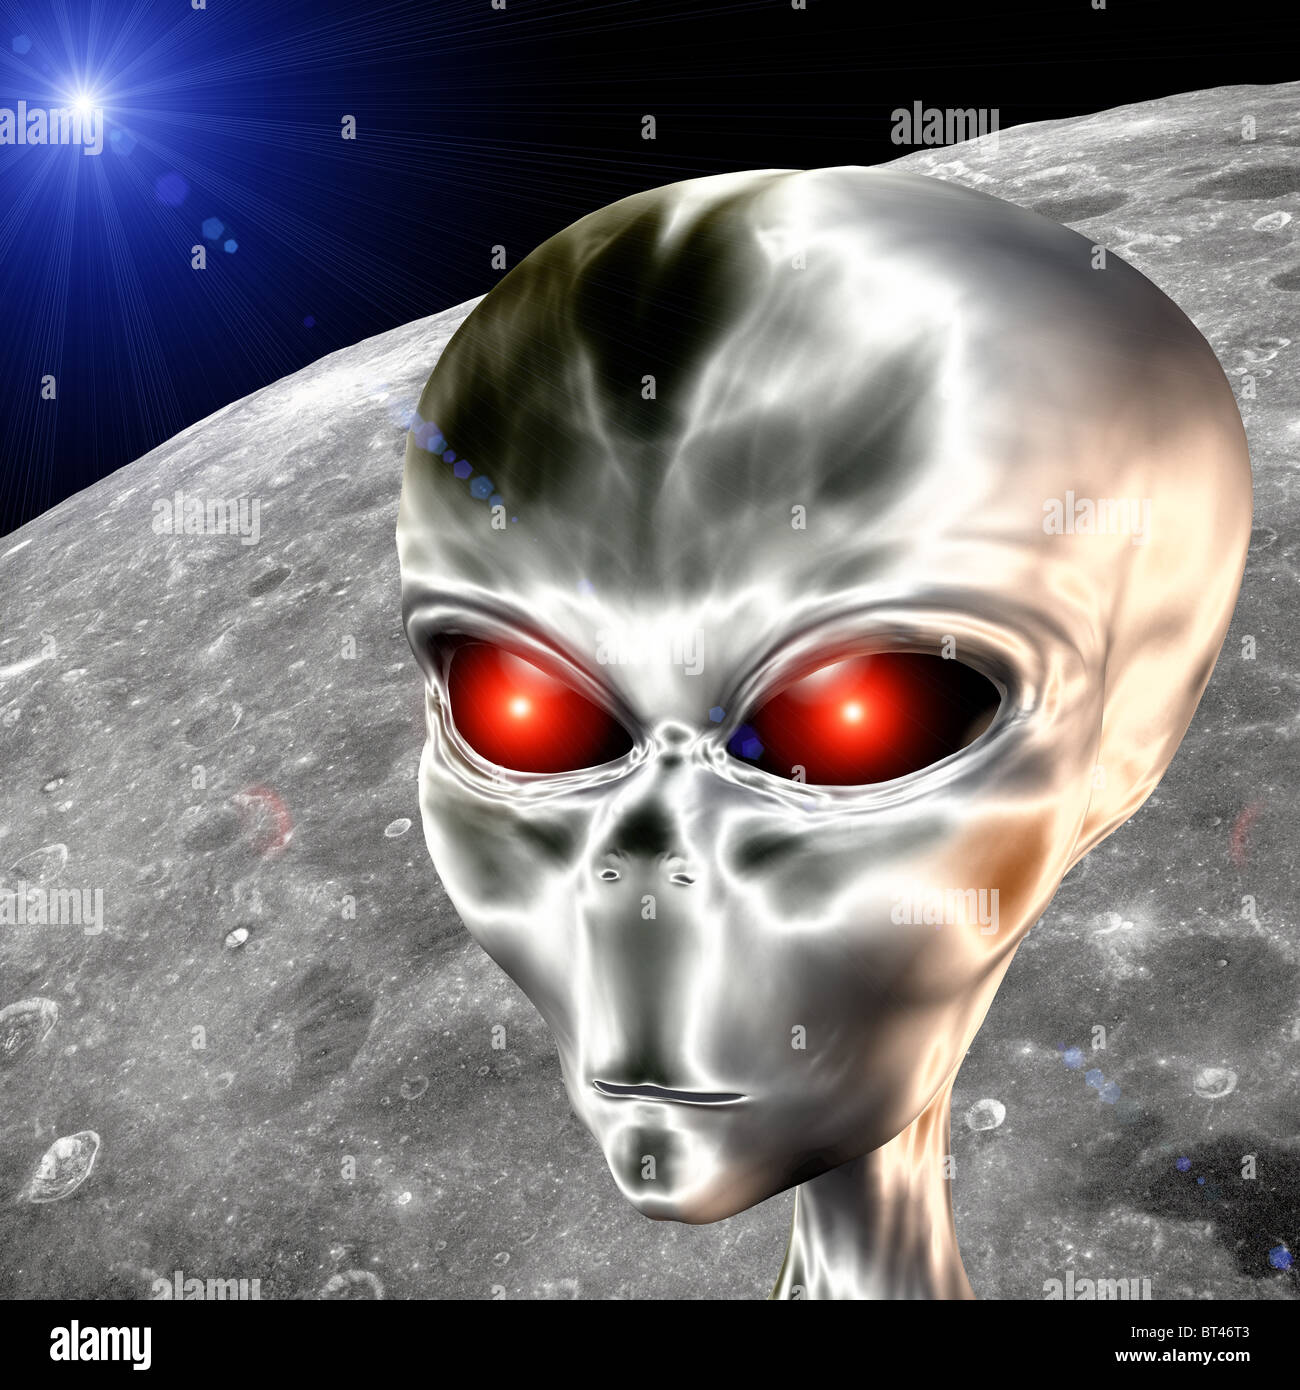 futuristic 3D computer generated bionic male alien on moon surface - Stock Image